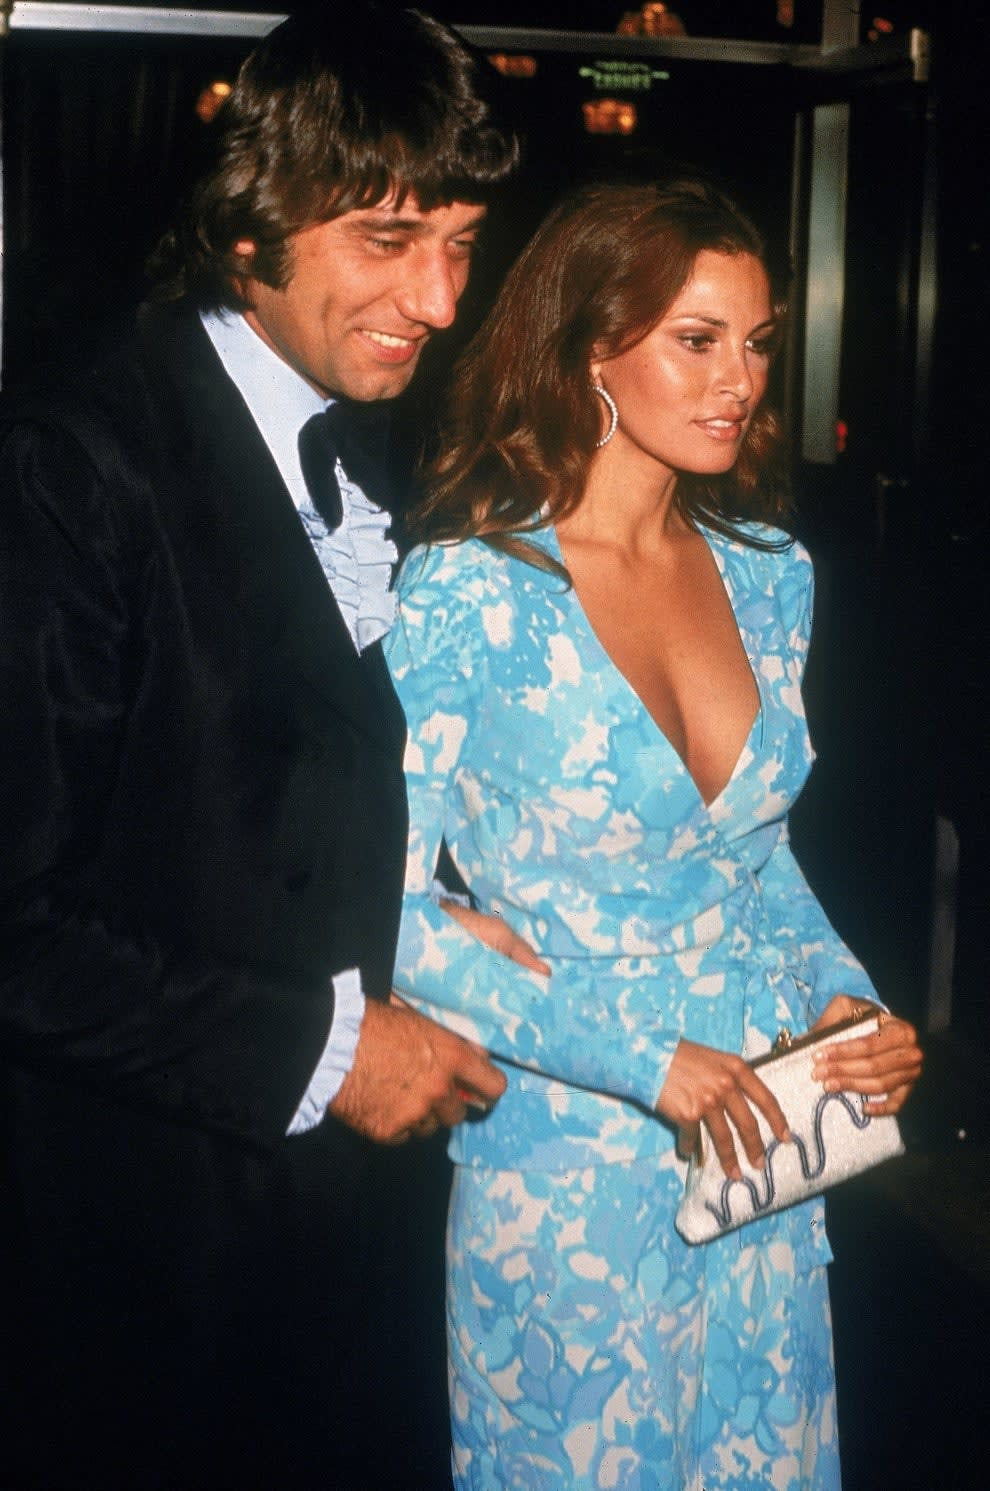 Welch and Namath at the Academy Awards in 1972